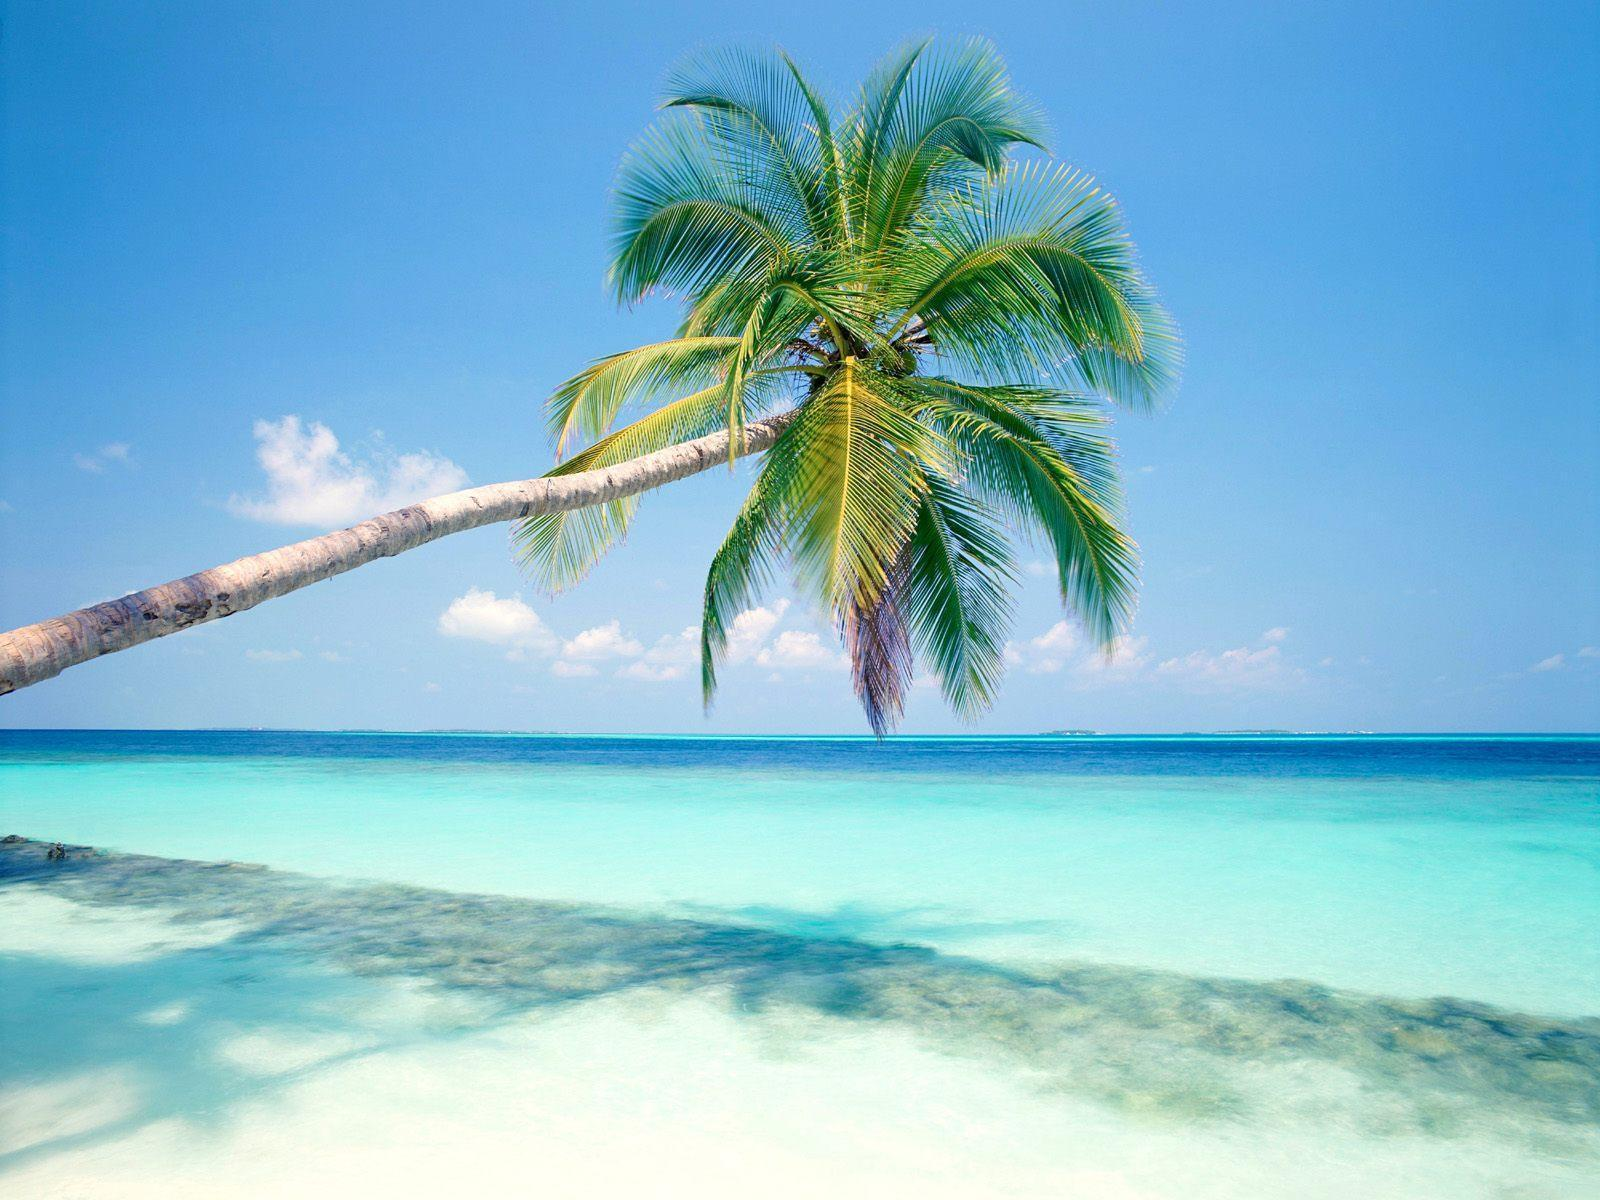 Free Desktop Wallpapers Tropical Islands